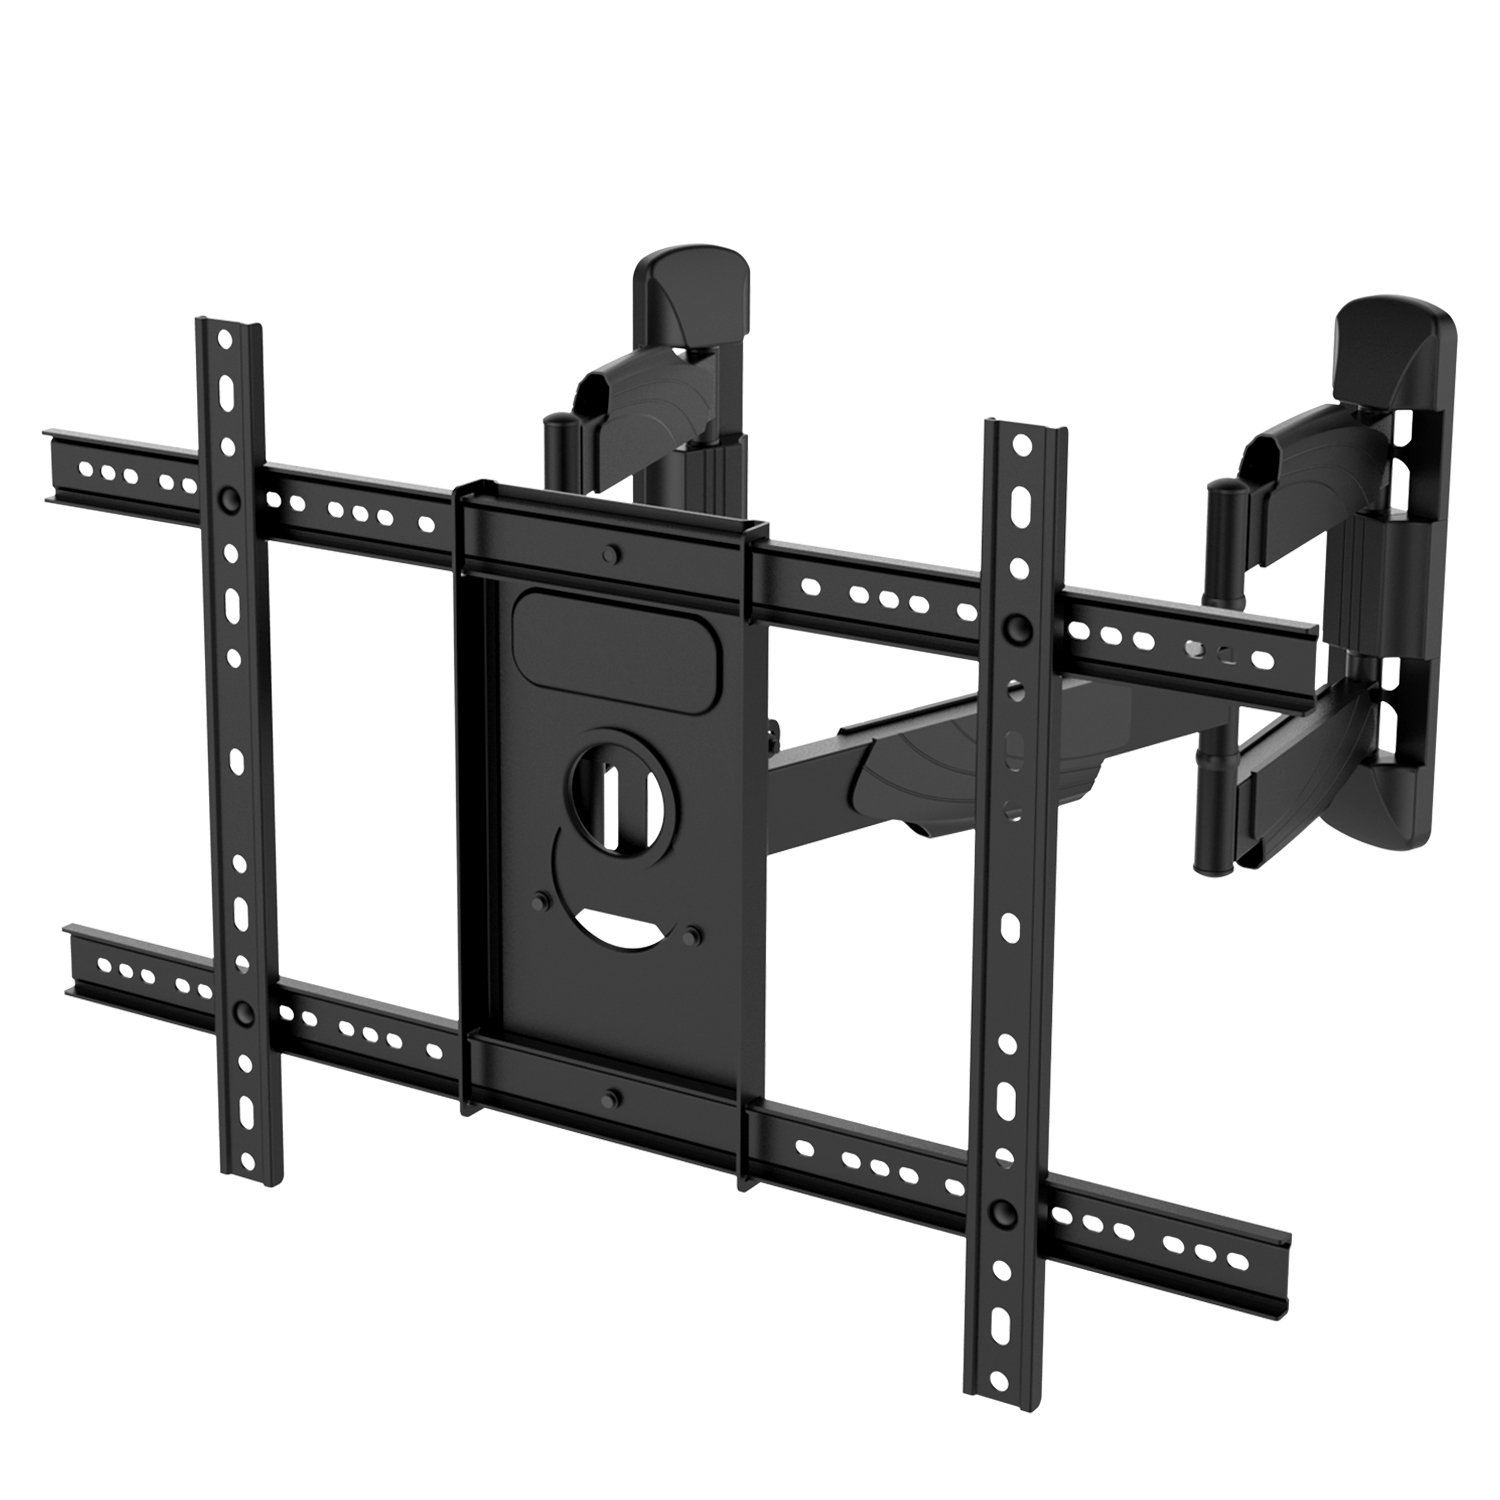 Corner TV Wall Mount Bracket Tilts, Swivels, Extends - Full Motion Articulating TV Mount for 37-70 Inch LED, LCD, Plasma Flat Screen TVs - Holds up to 99 Lbs, VESA 600x400 - Heavy Duty TV Bracket